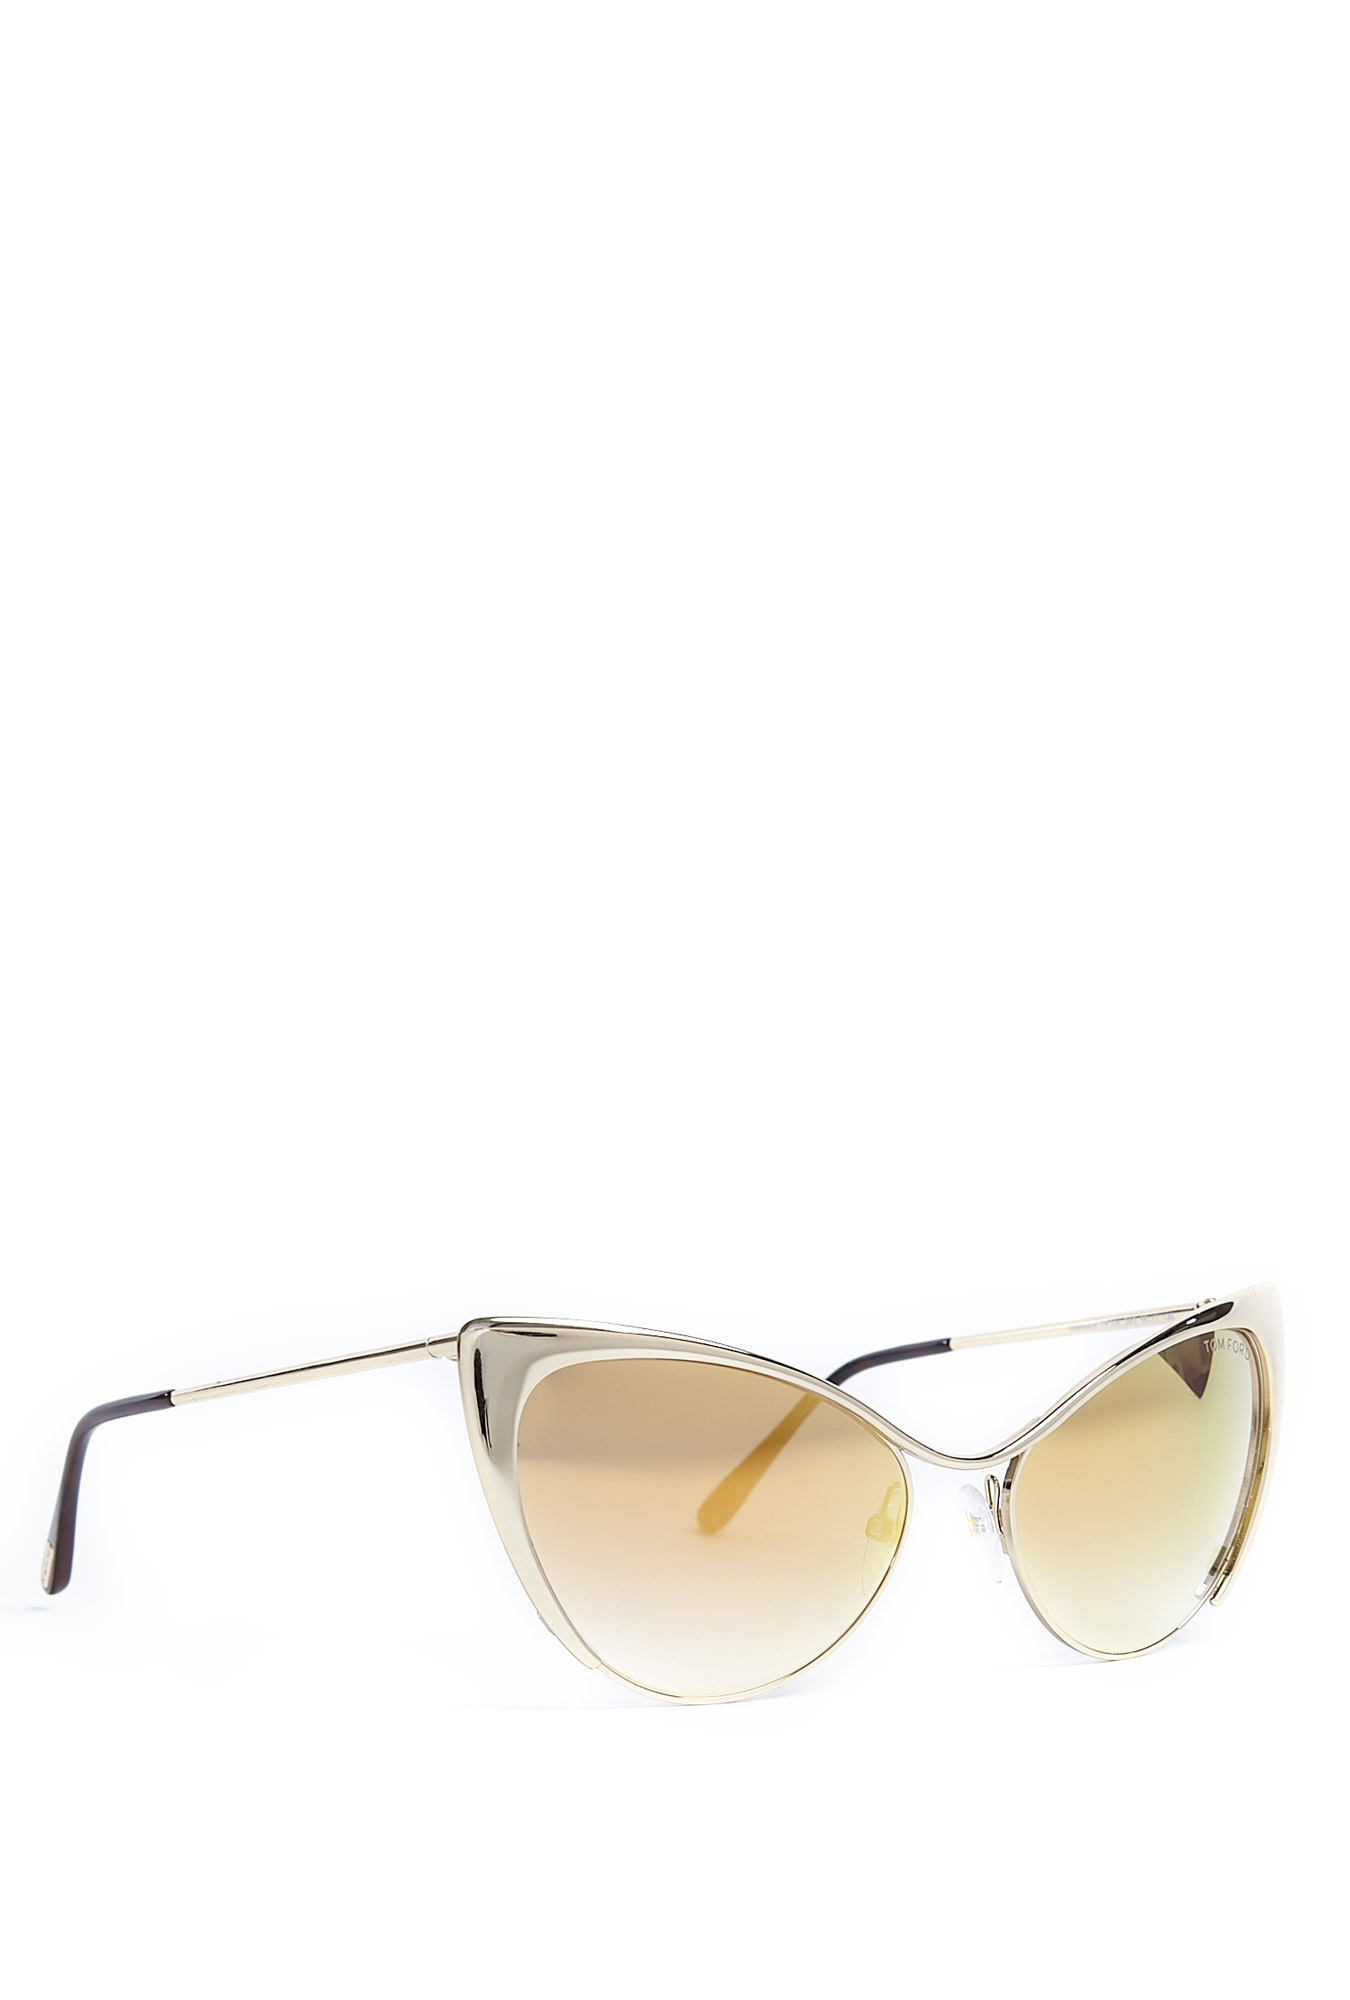 Tom Ford Nastasya Cat Eye Frame Gold Lens Sunglasses by ...